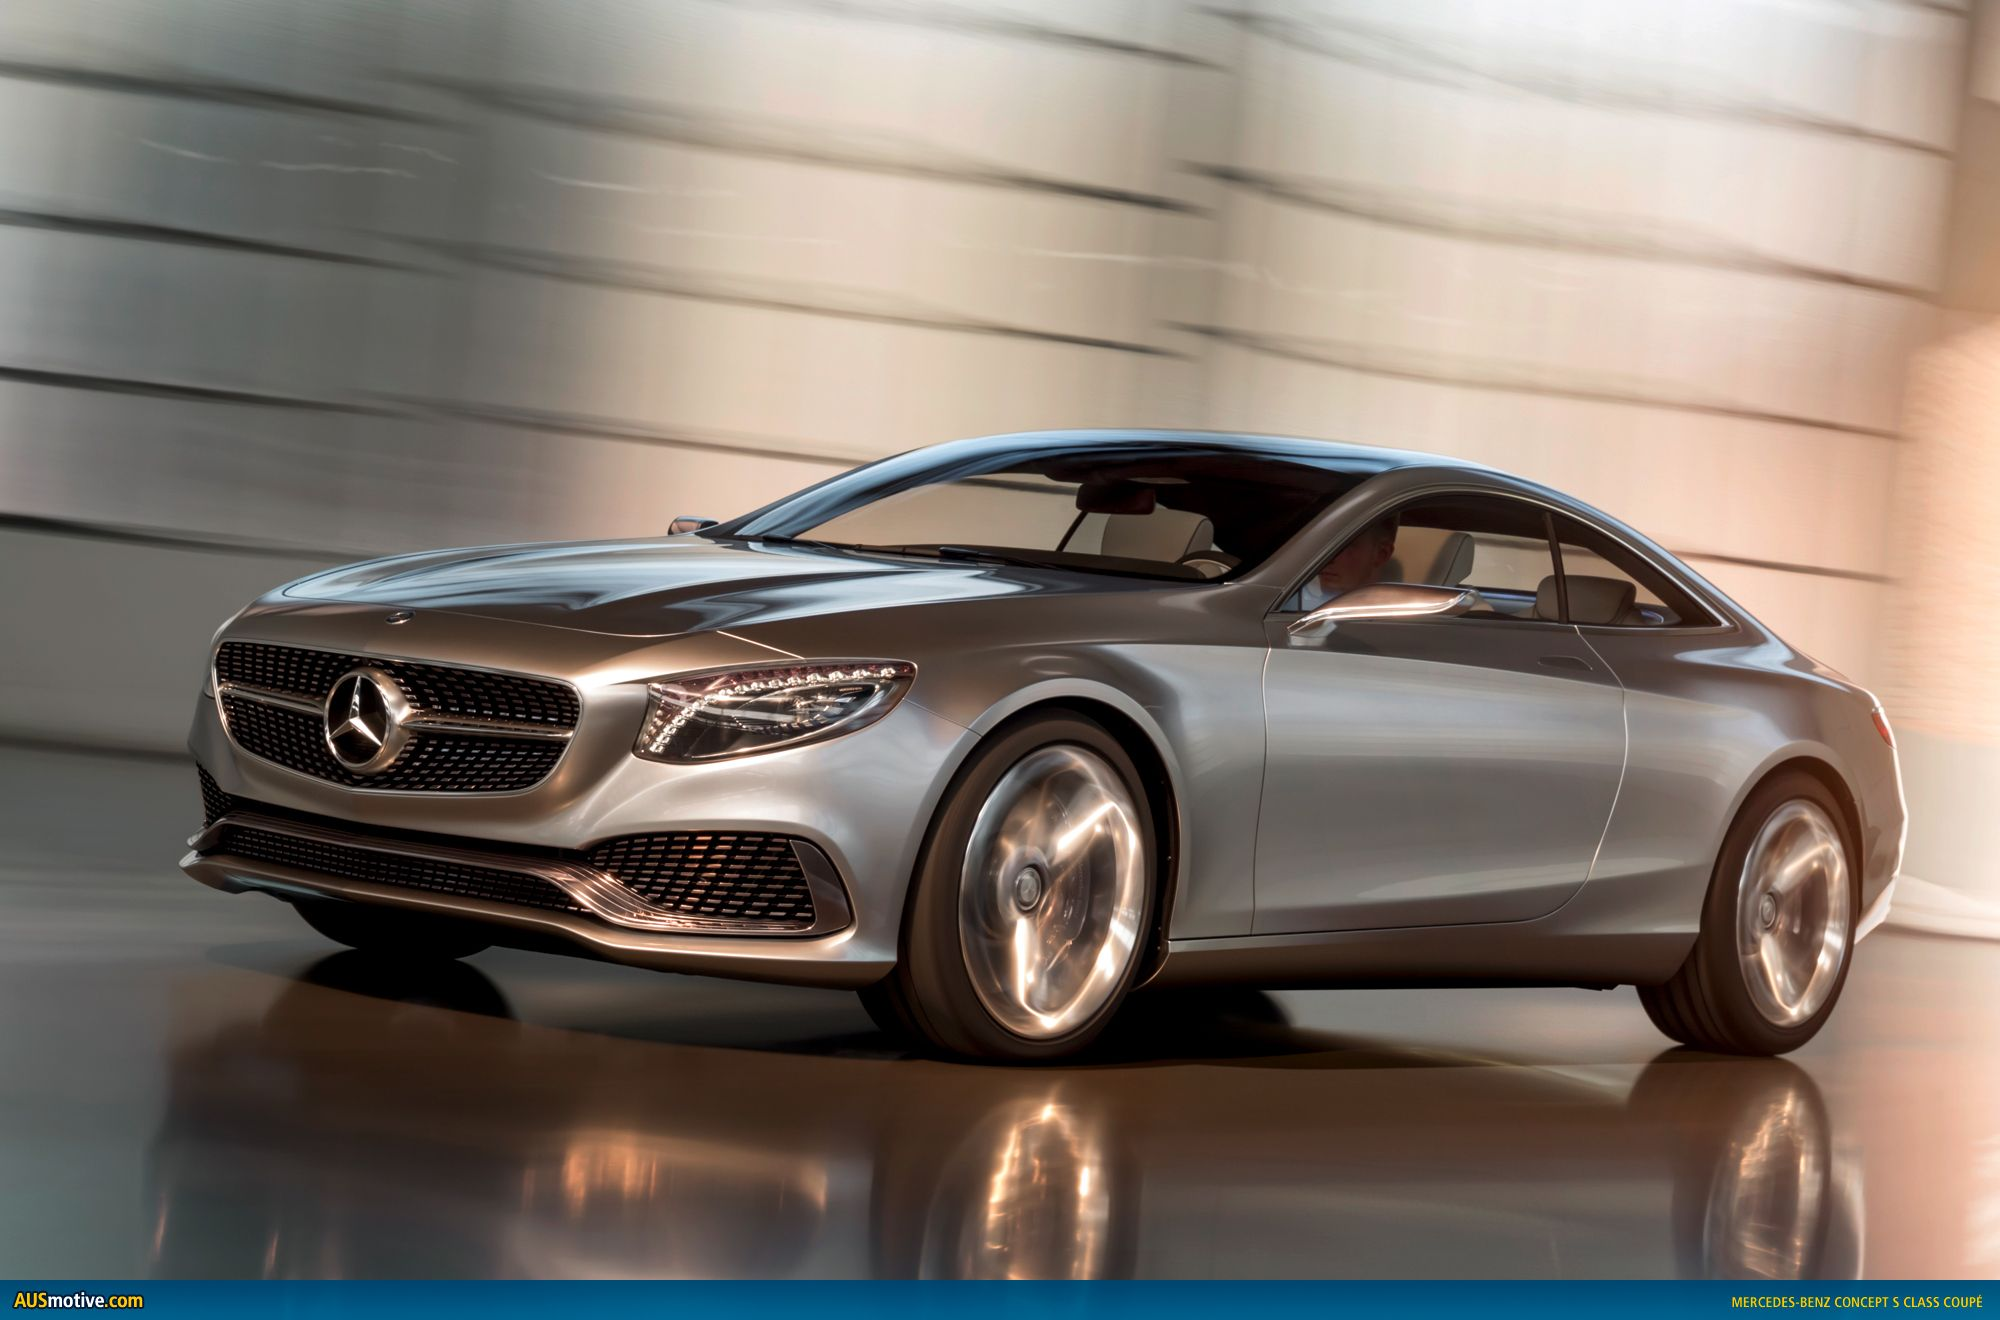 The new S-Class coupe is too sleek. This thing has interior LED lights